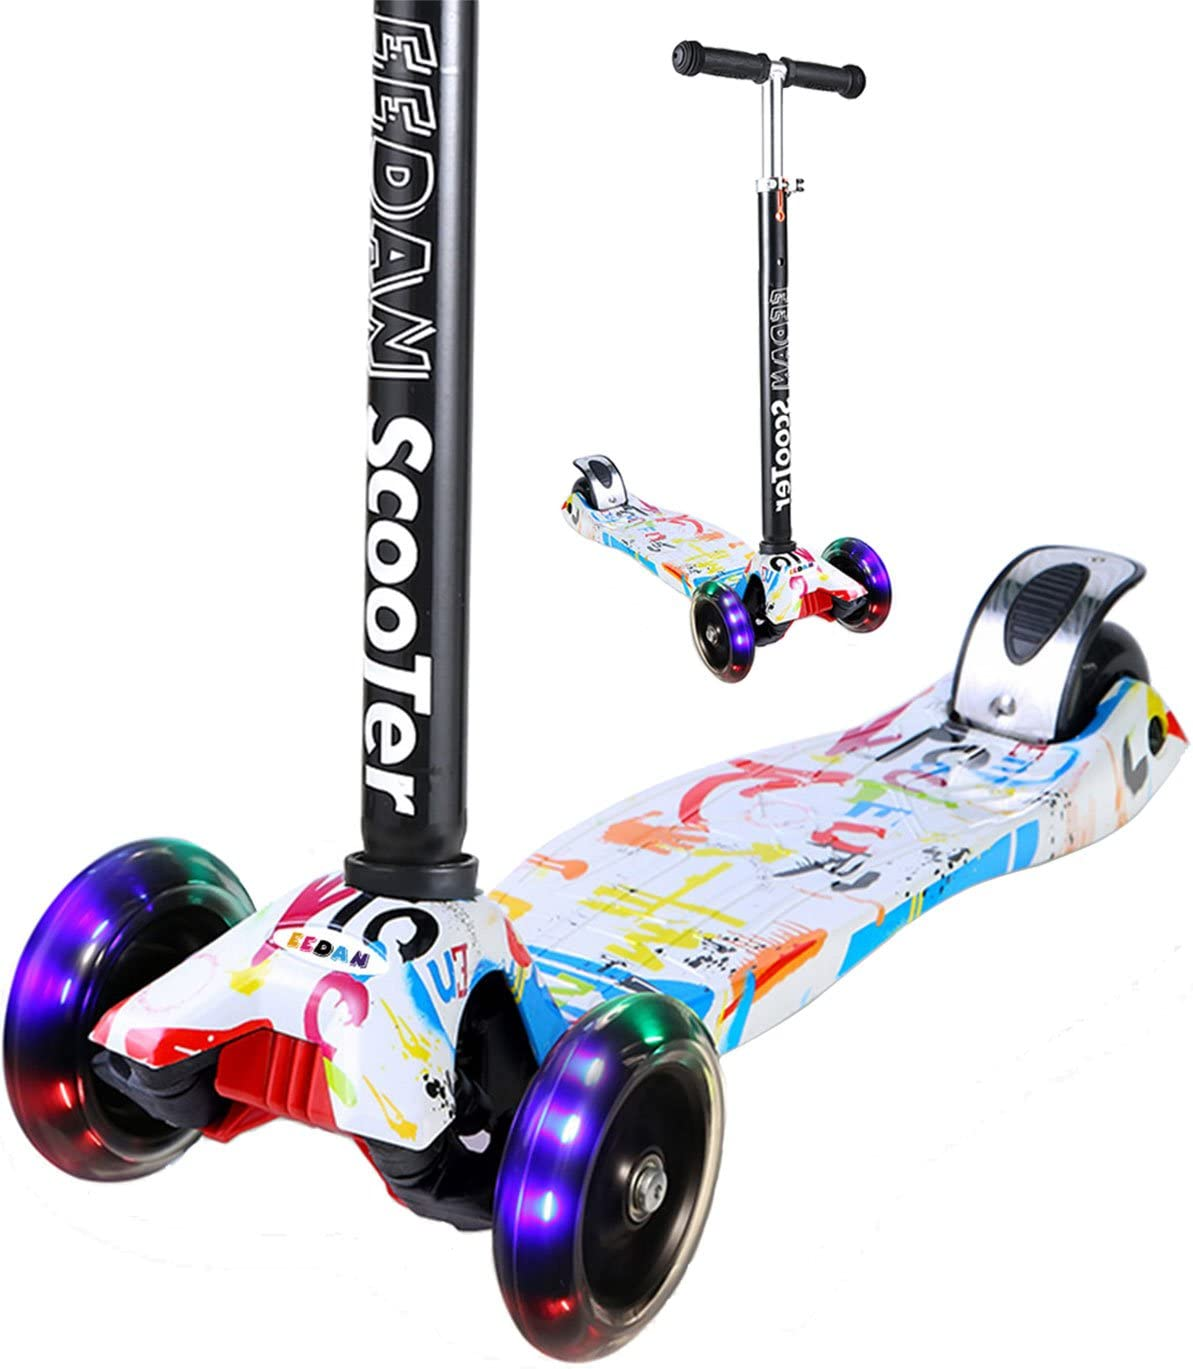 EEDAN Scooter for Kids 3 Wheel T-bar Adjustable Height Handle Kick Scooters with Deluxe PU Flashing Wheels Wide Deck for Boys Girls from 2 to 14 Year-Old